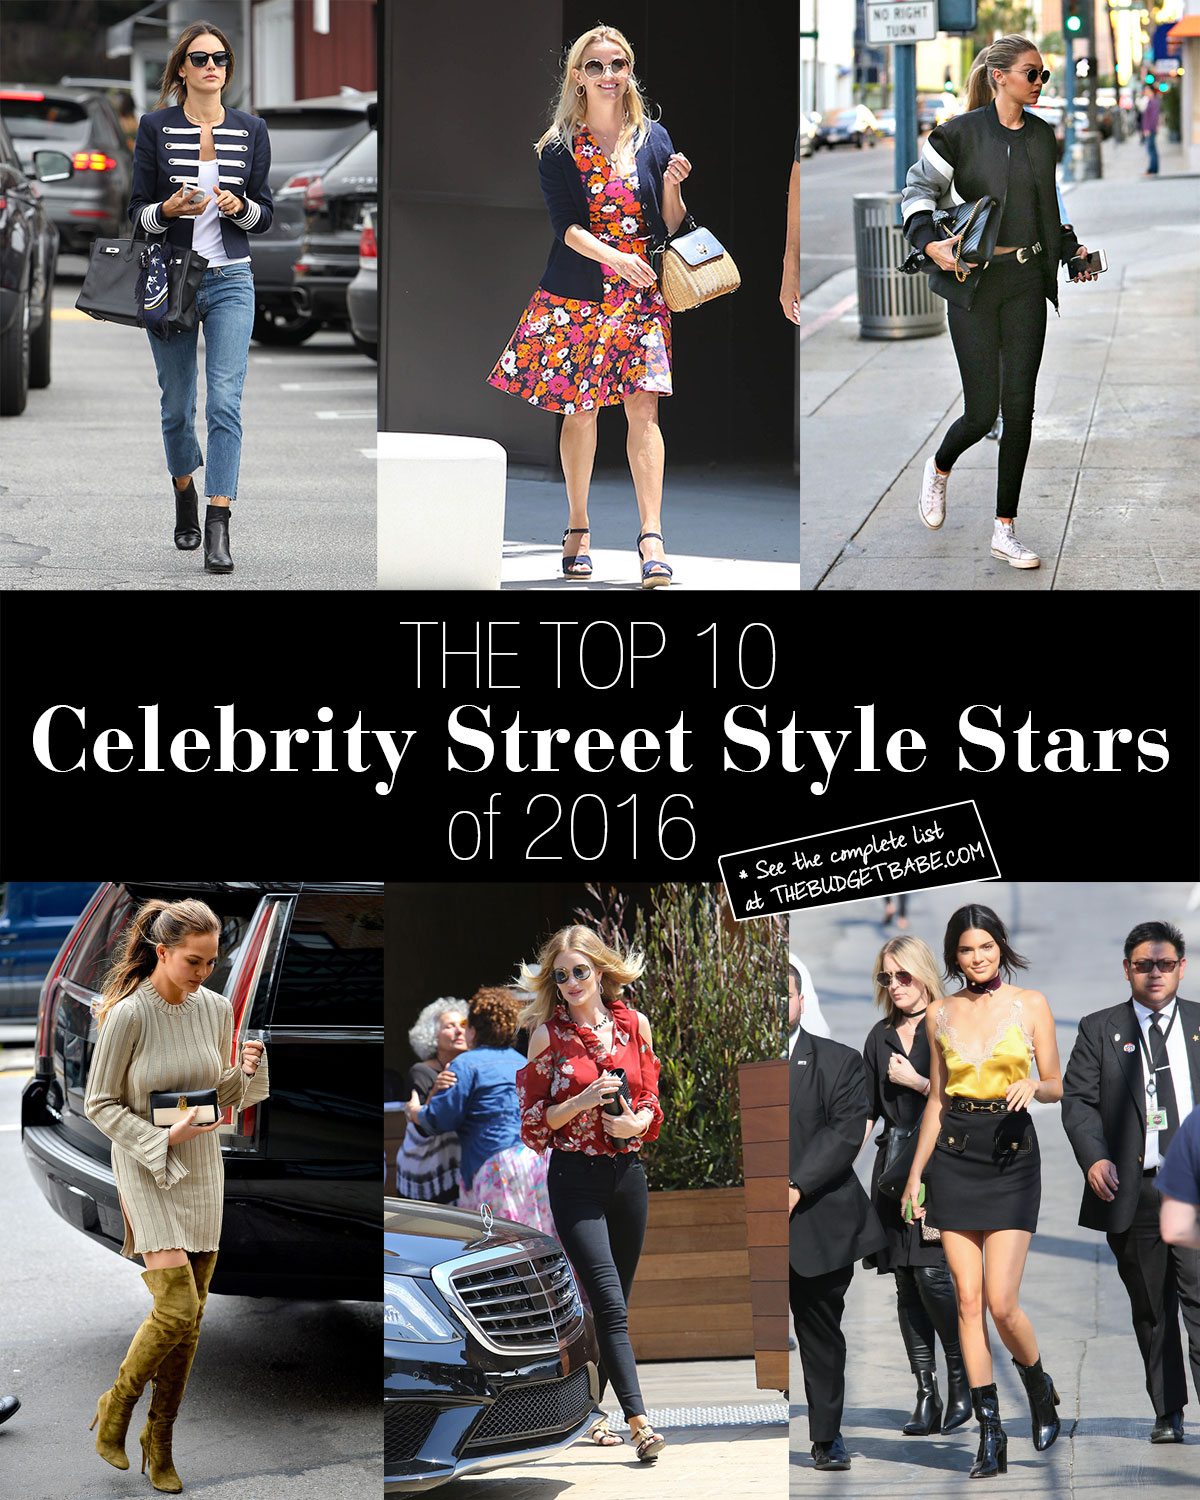 See which ten celebs topped our list of best-dressed street style stars in 2016.